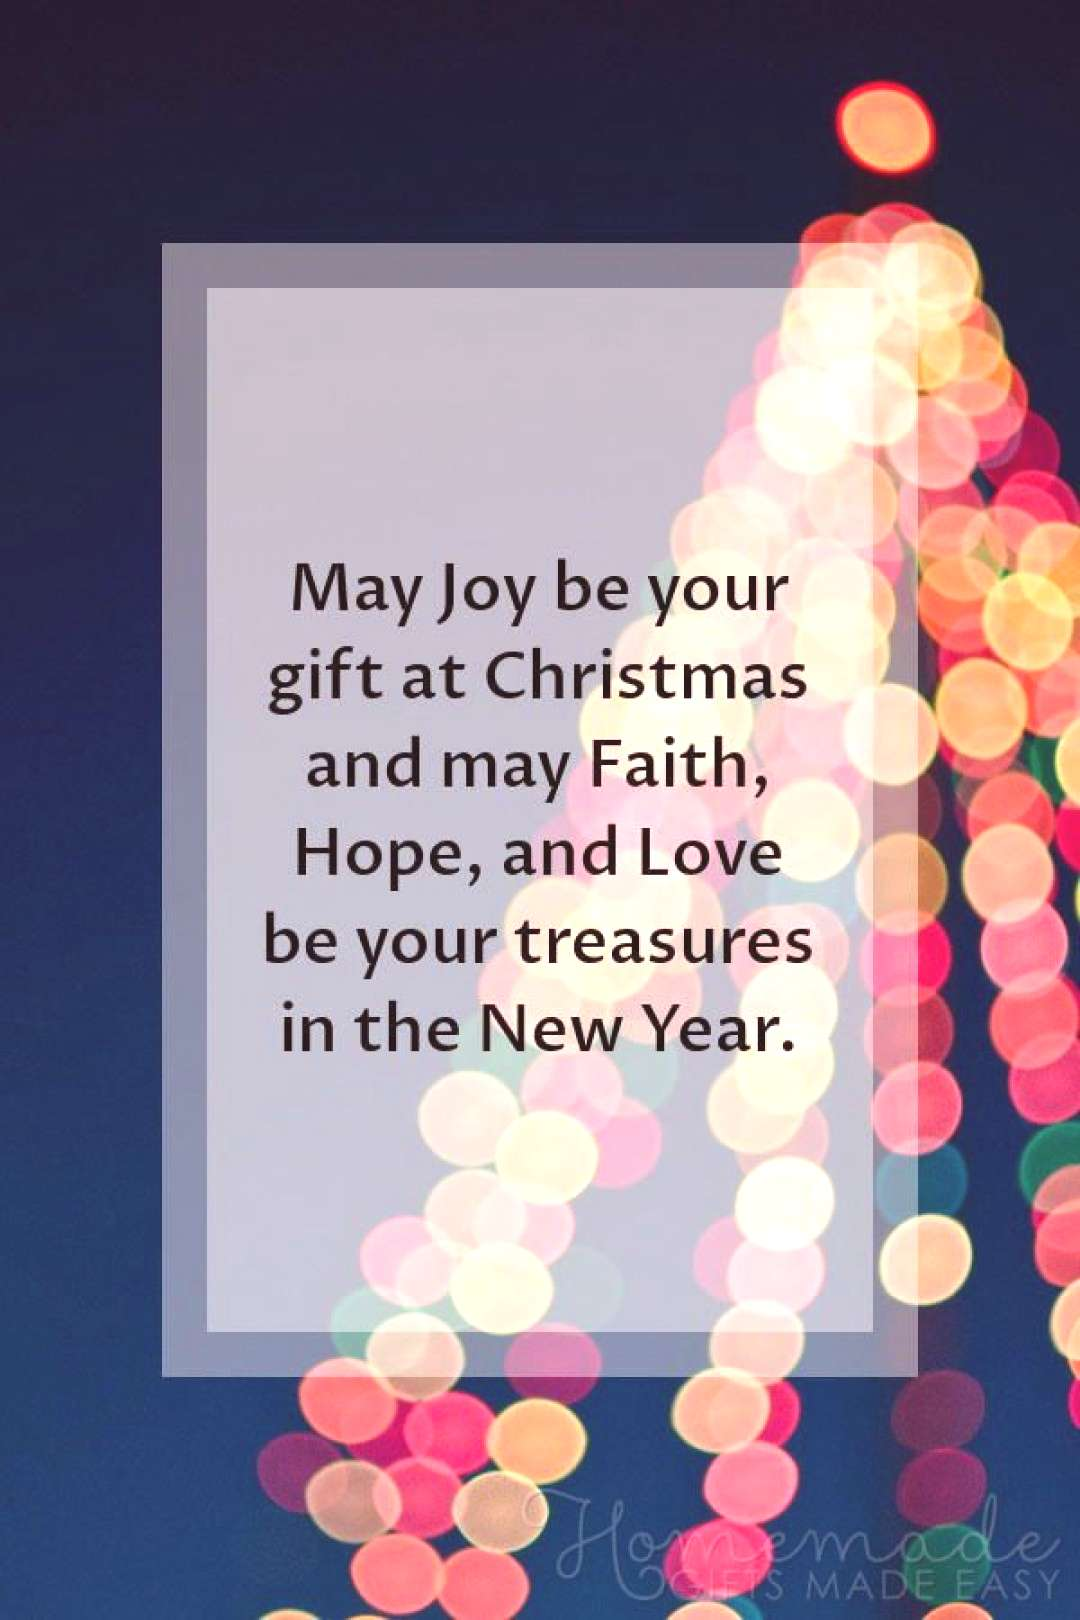 Christmas Greetings | May Joy be your gift at Christmas and may Faith, Hope, and Love be your treas